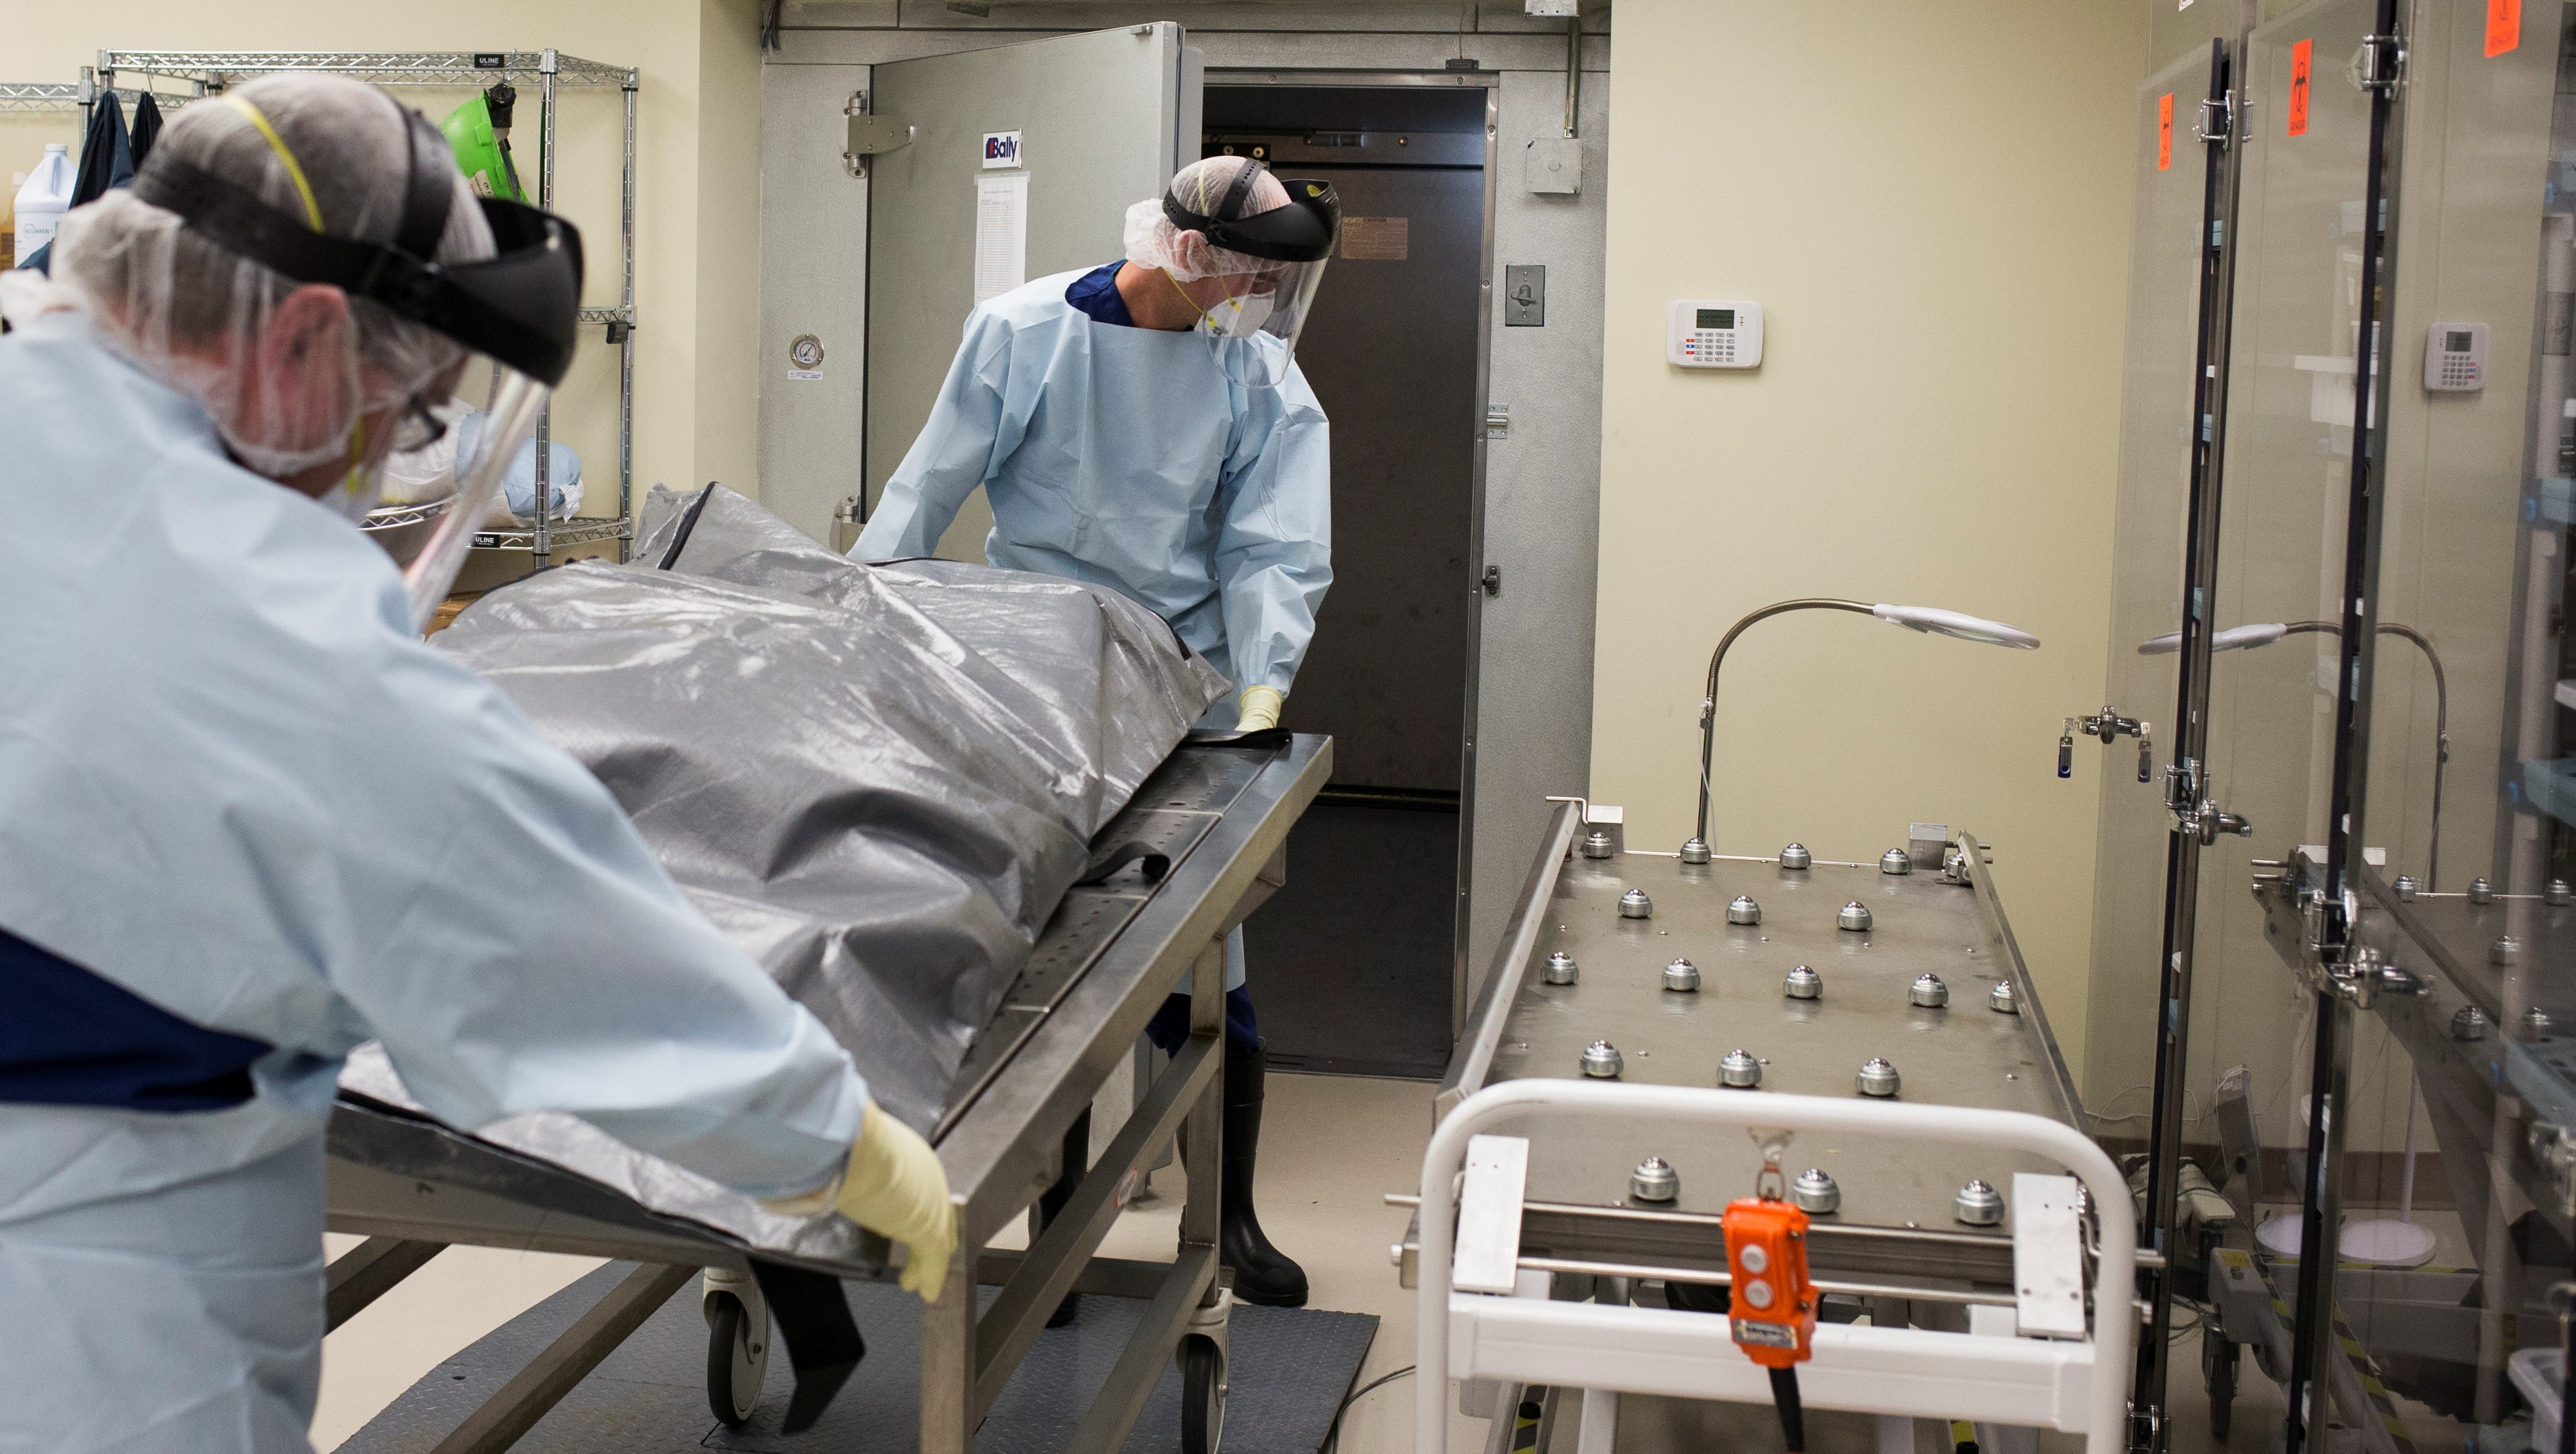 Men transfer the body of a suspected opioid overdose at ForensicDx, a company which specializes in autopsies and scientific testing, in Windber, Pennsylvania, U.S. on August 9, 2017.  Picture taken on August 9, 2017. REUTERS/Adrees Latif - RC13DB00E0E0